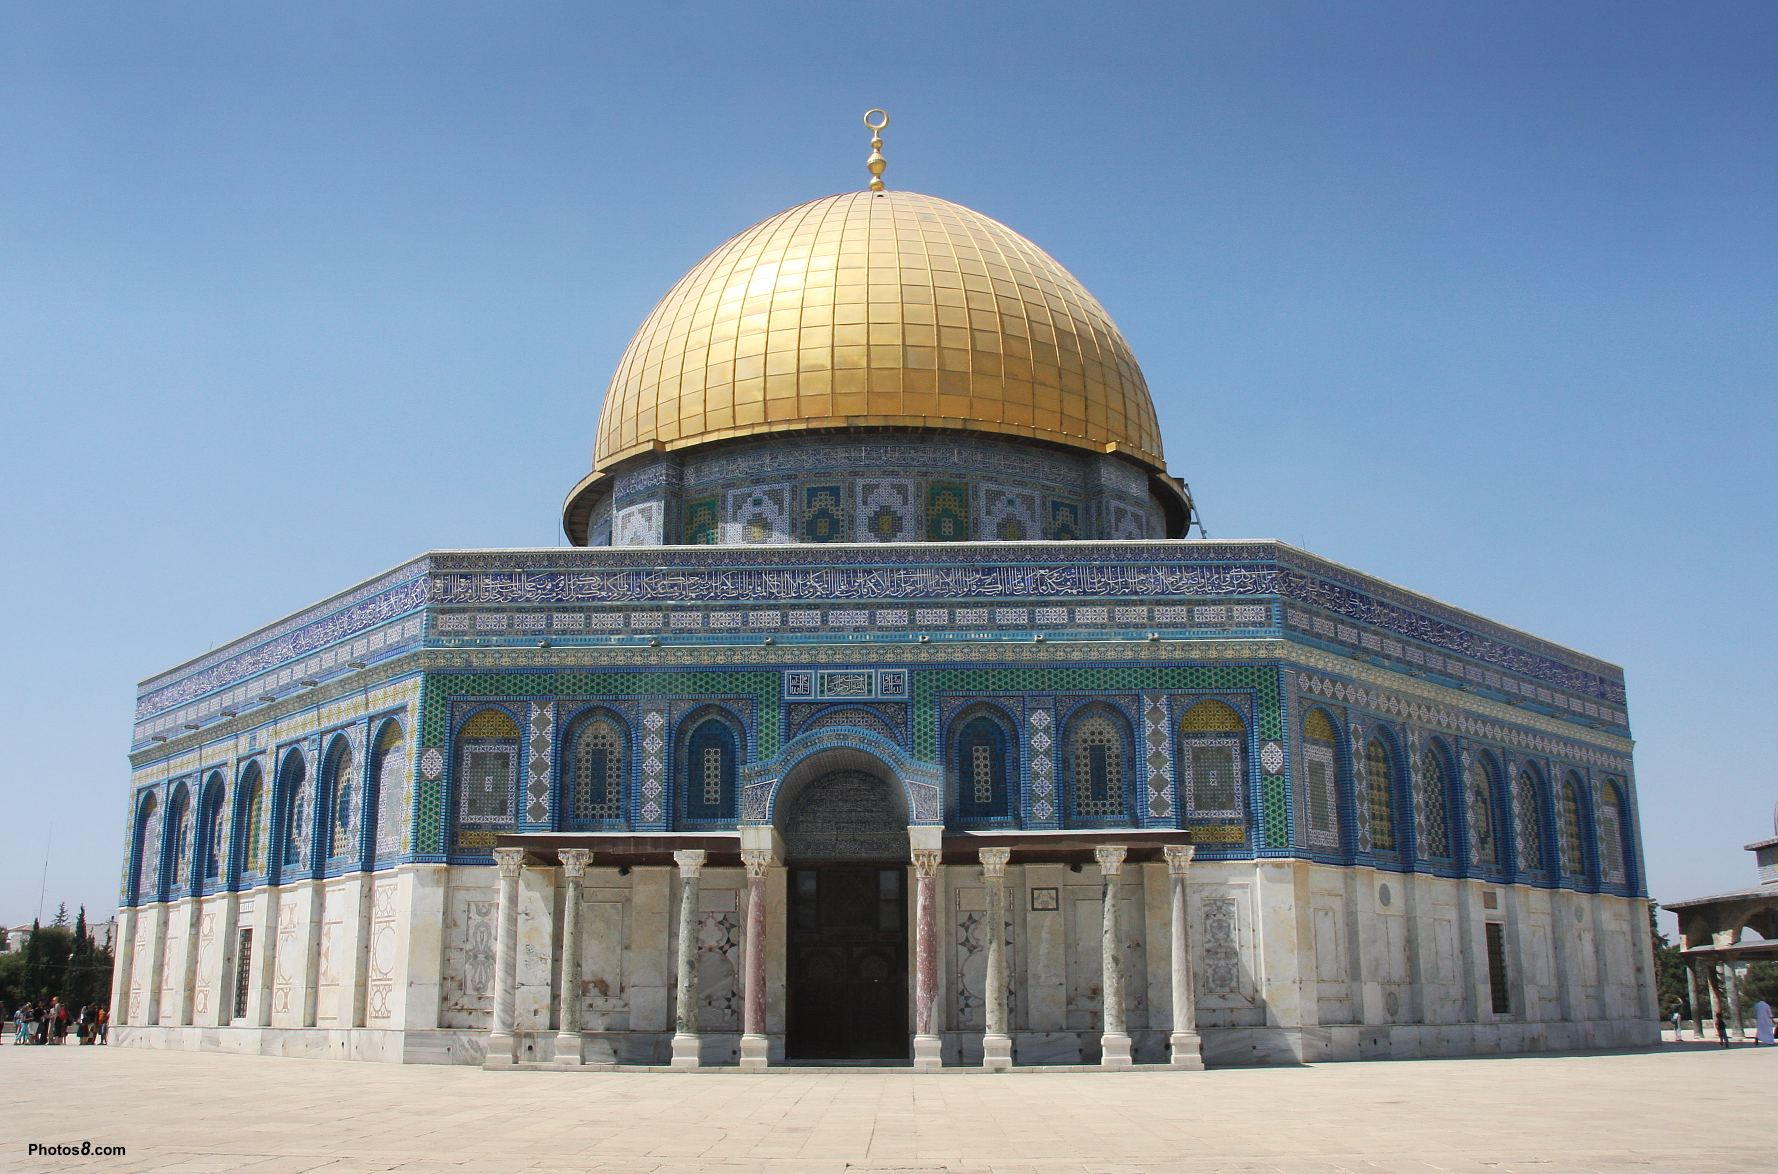 The Rock Mosque (Dome of the Rock)